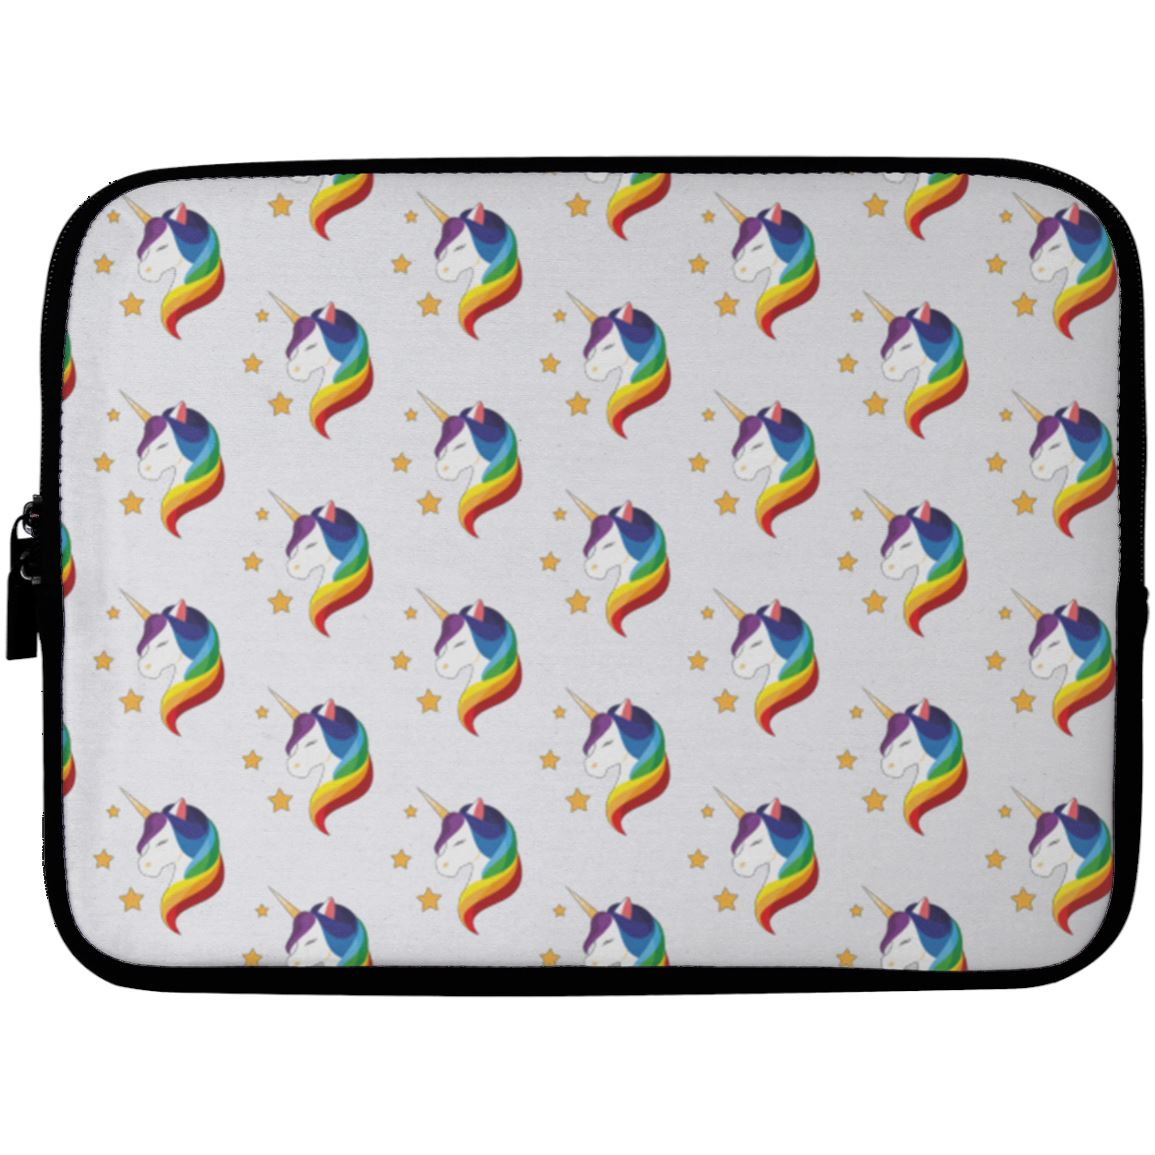 Unicorn Fantasy Laptop Sleeve Apparel Laptop Sleeve - 10 inch White One Size